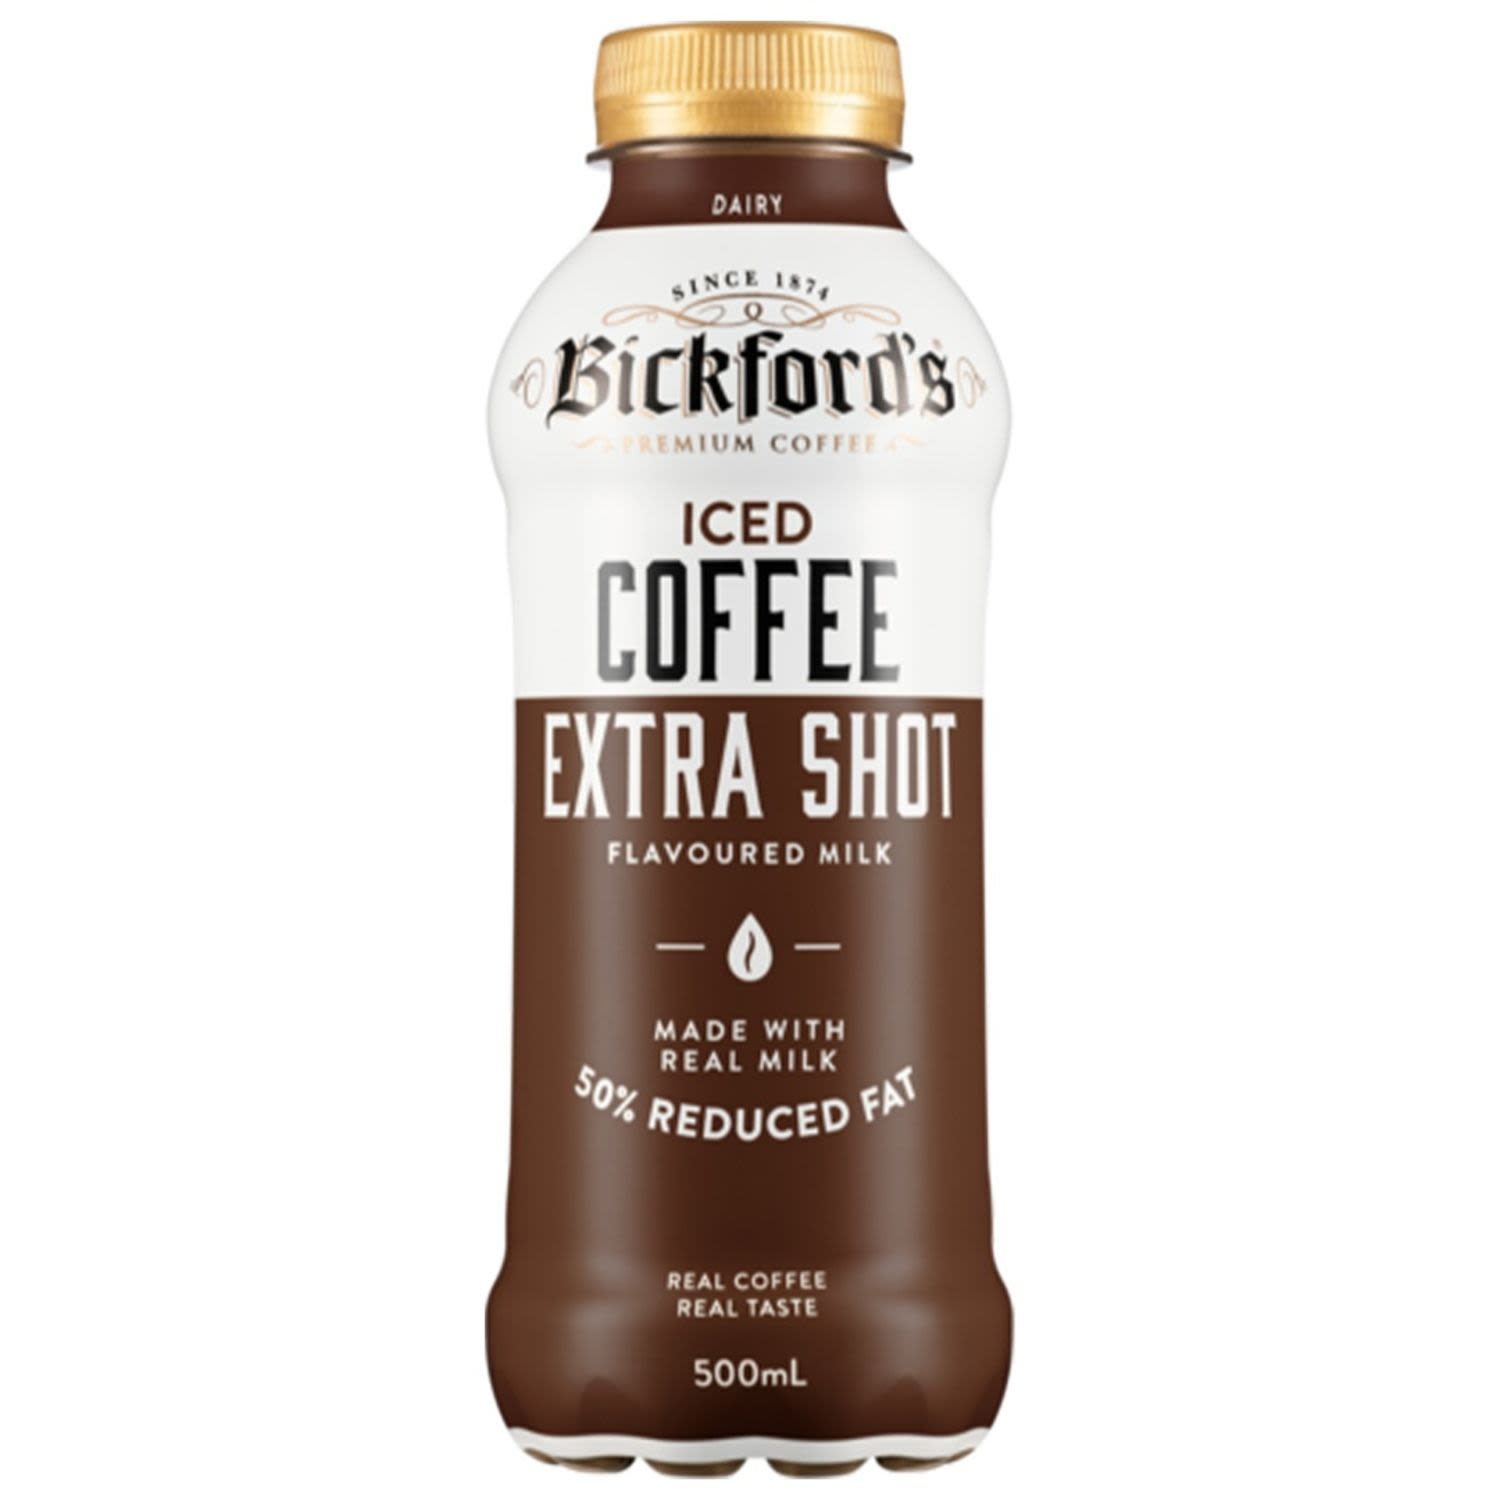 Bickford's Iced Coffee Extra Shot Flavoured Milk, 500 Millilitre